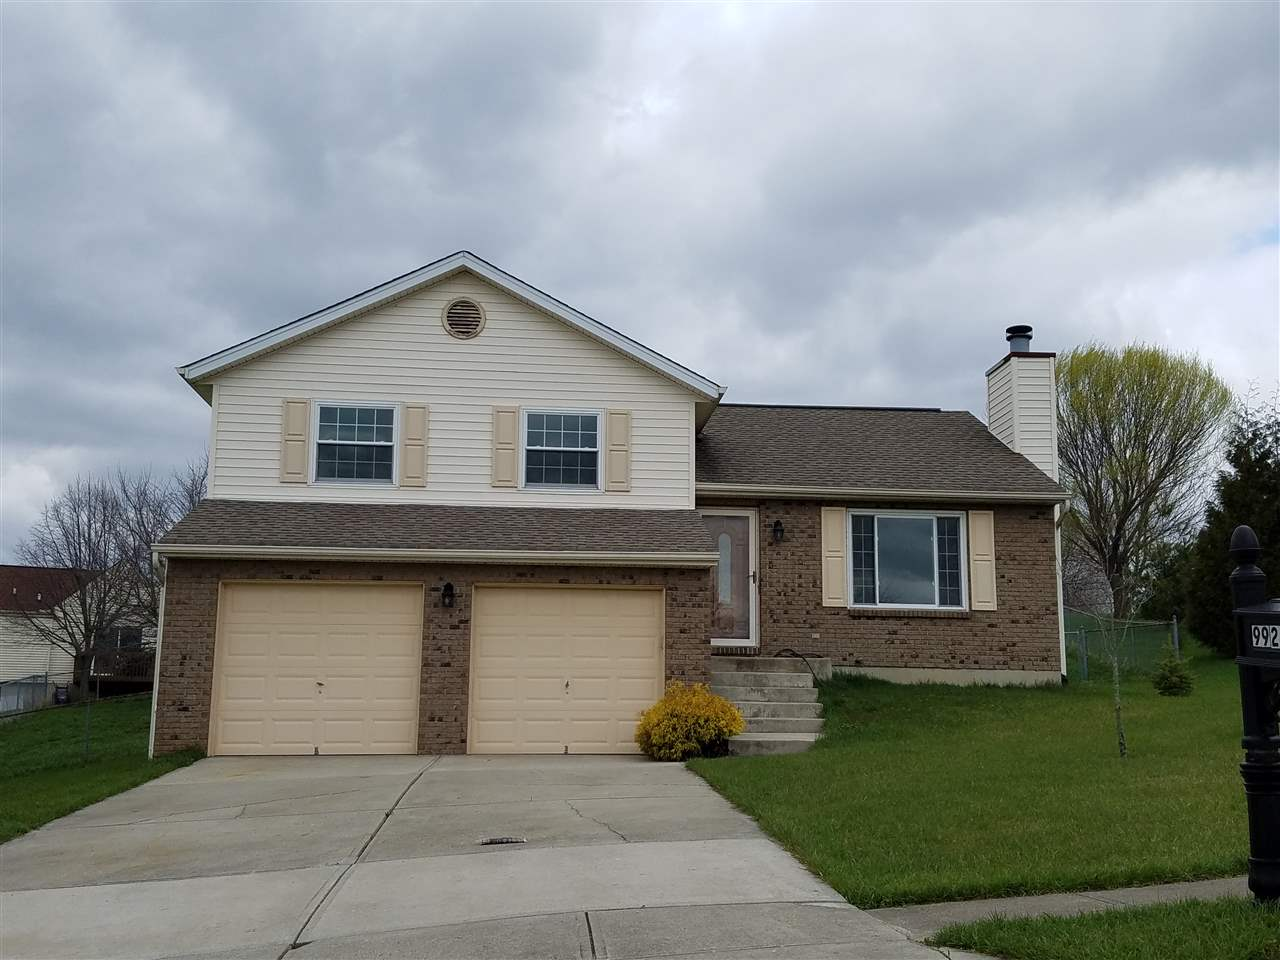 Photo 1 for 9921 Cobblestone Blvd Independence, KY 41051